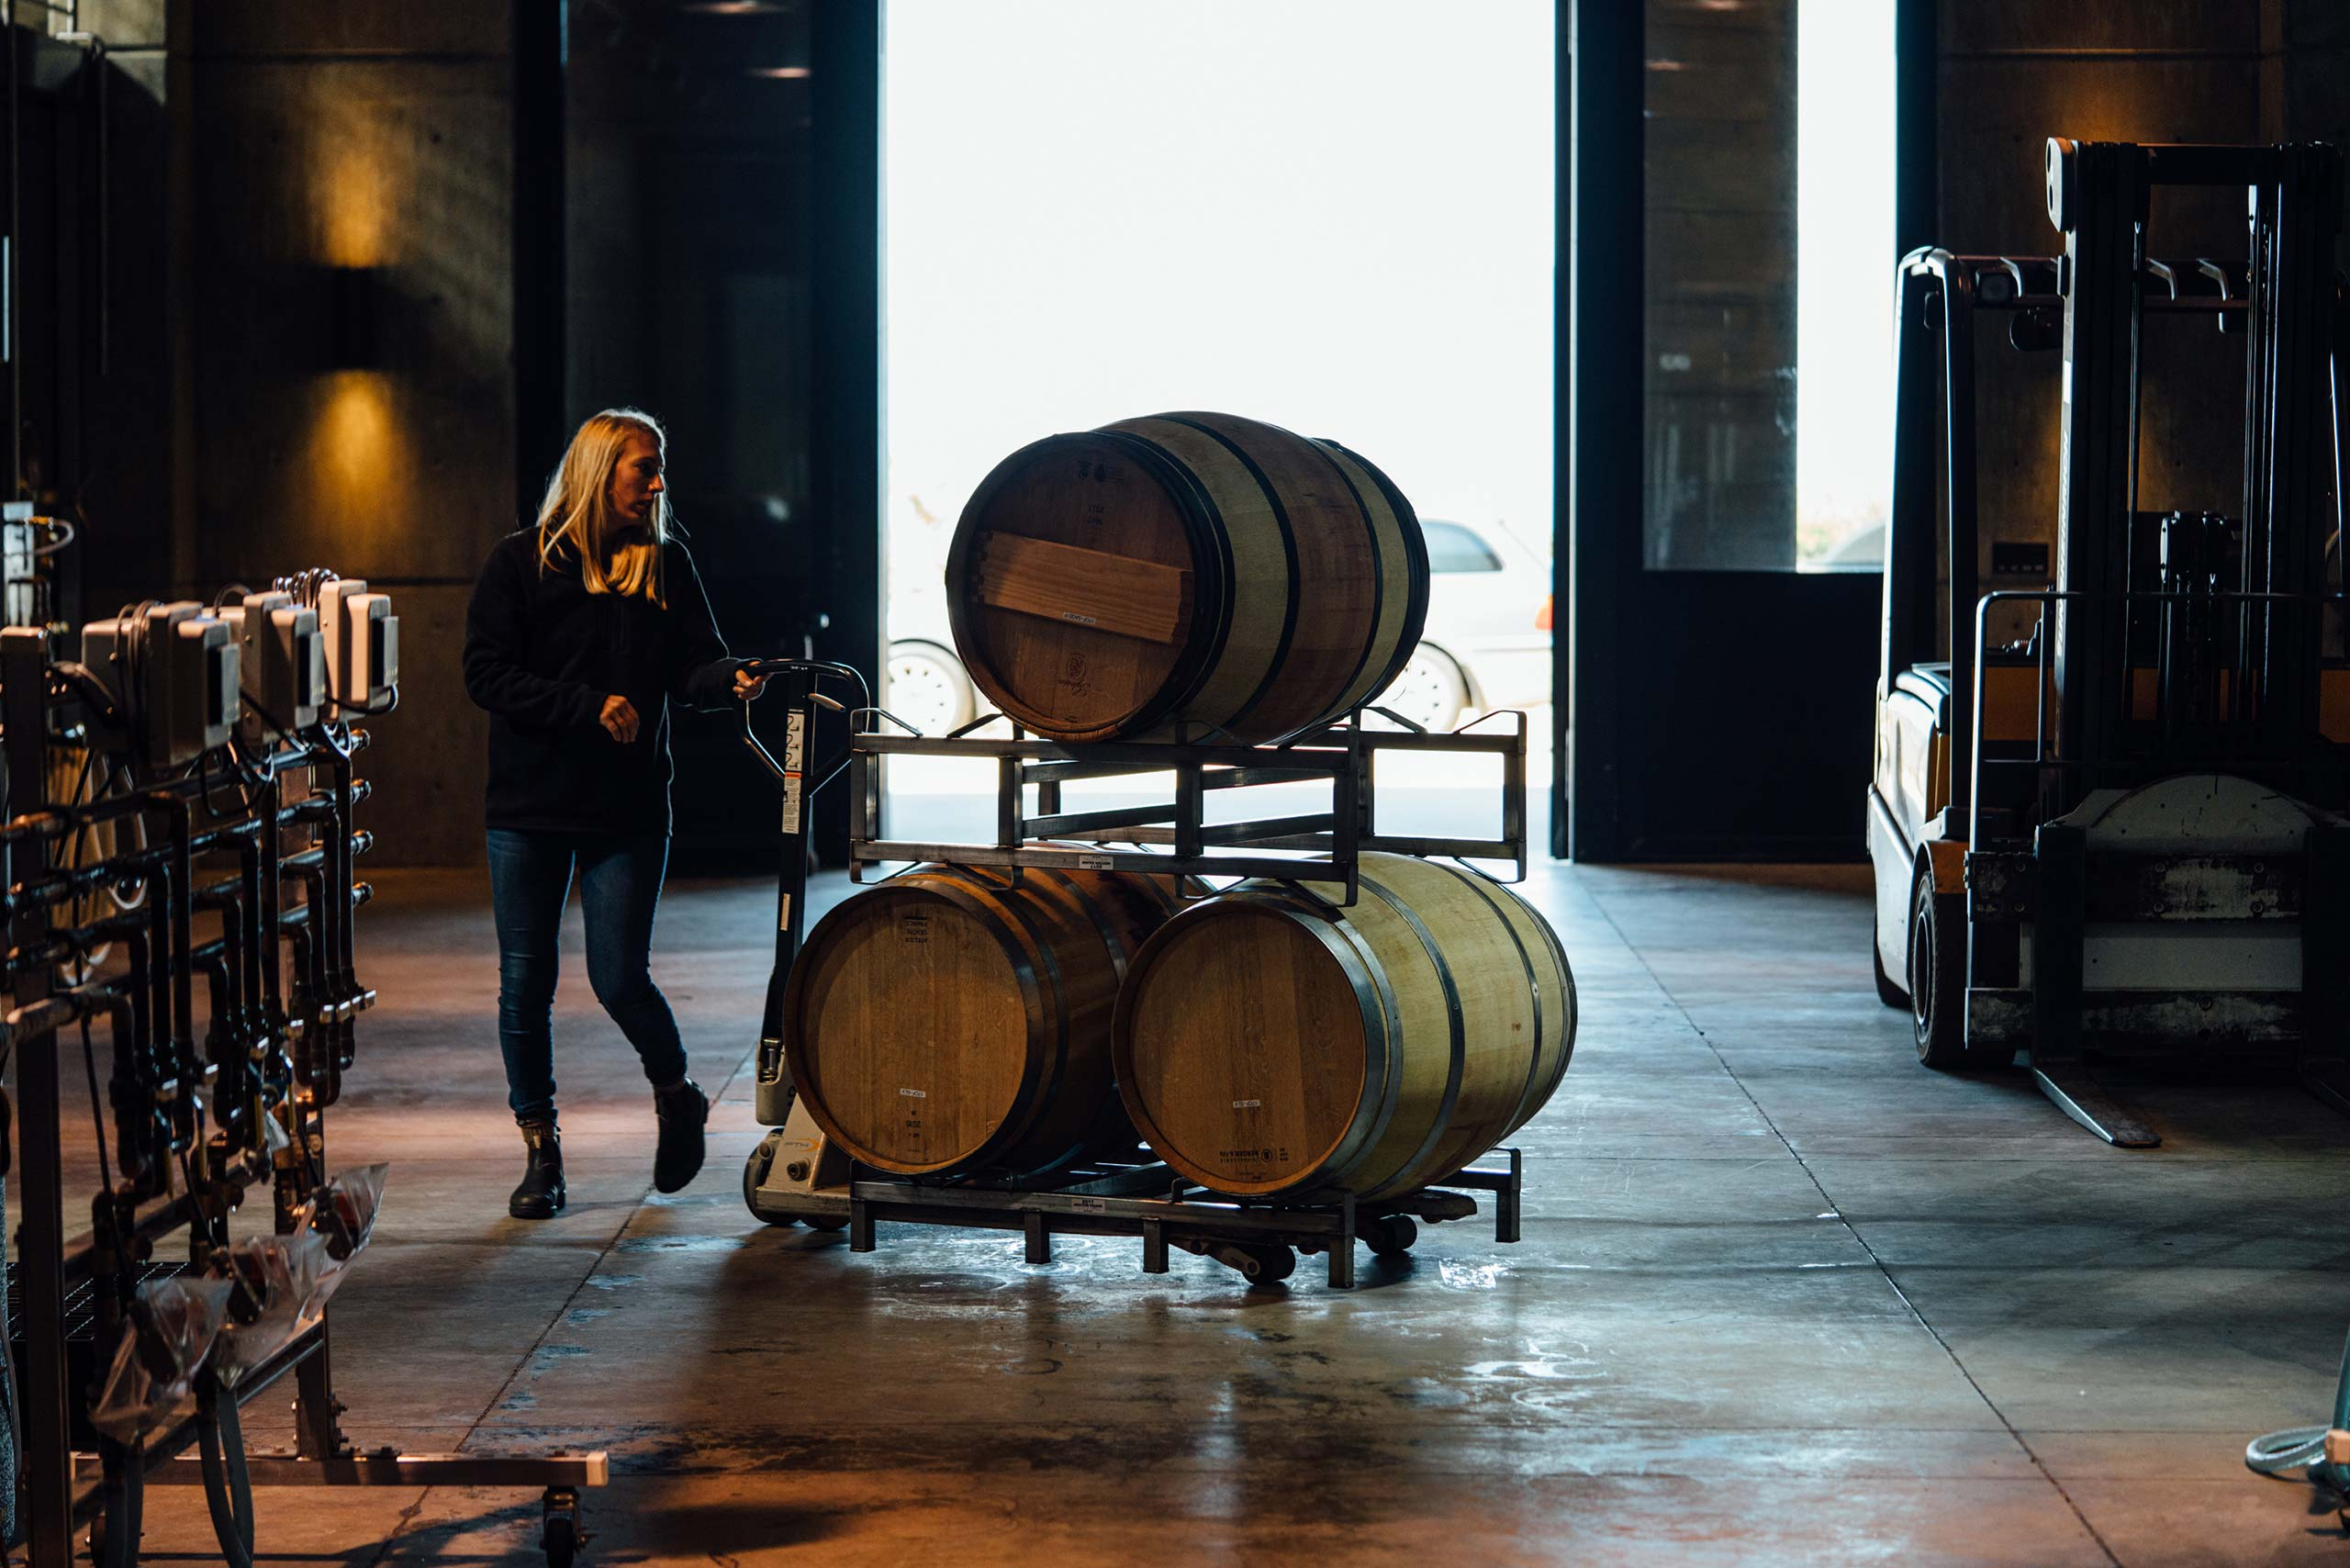 Laura moving barrels in the cellar